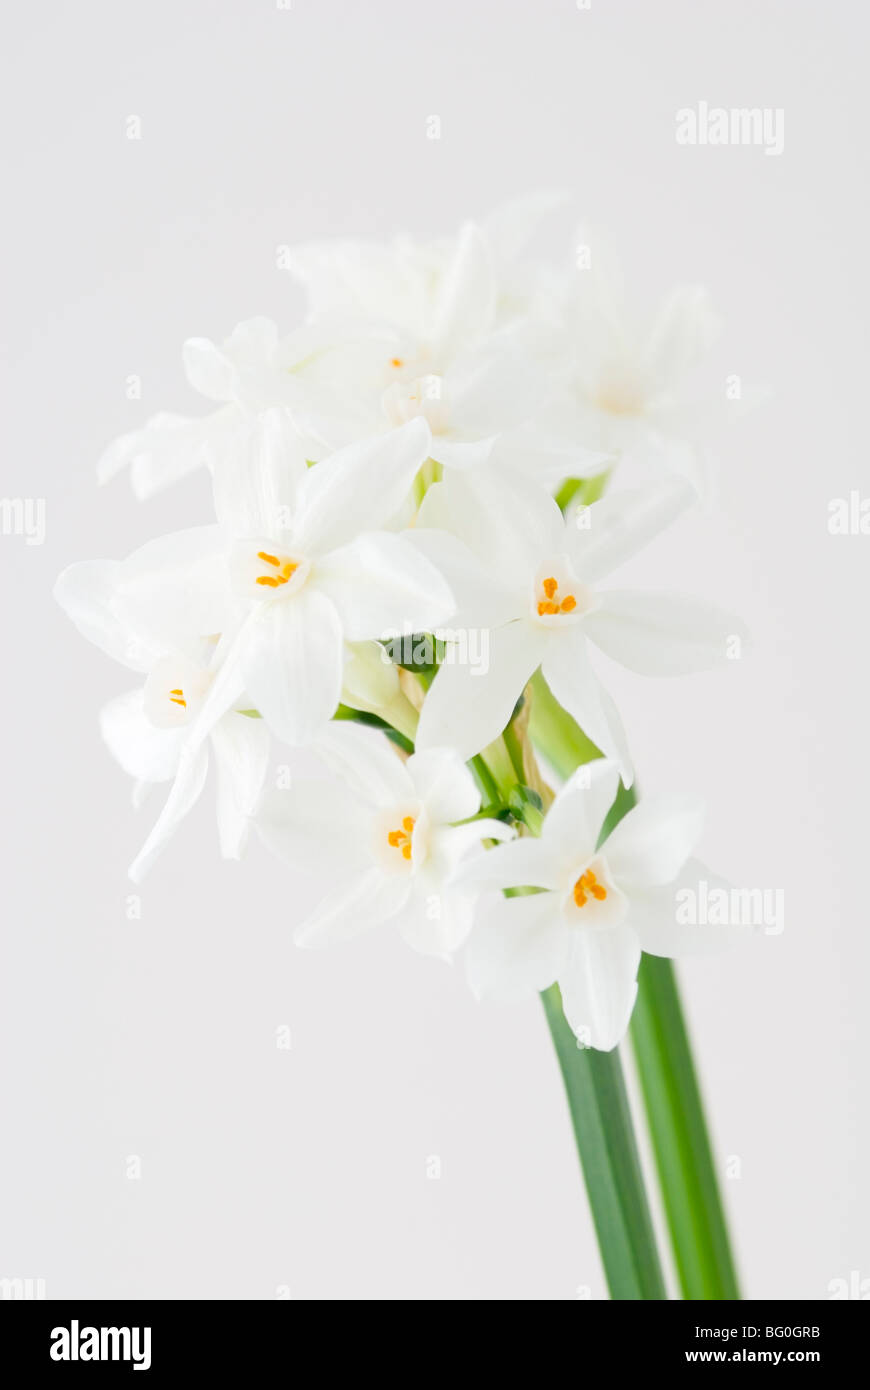 Paper white narcissus stock photos paper white narcissus stock narcissus papyraceus paper white narcissus stock image mightylinksfo